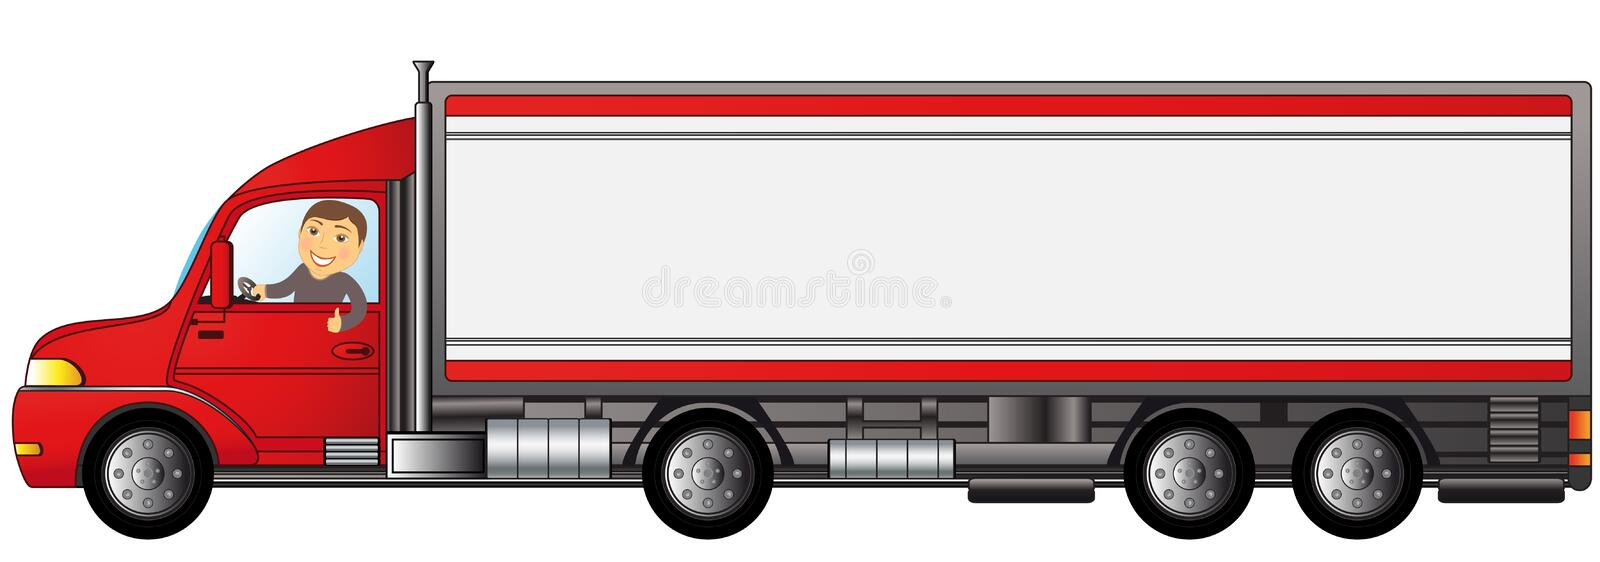 Heavy truck with man with space for text royalty free illustration